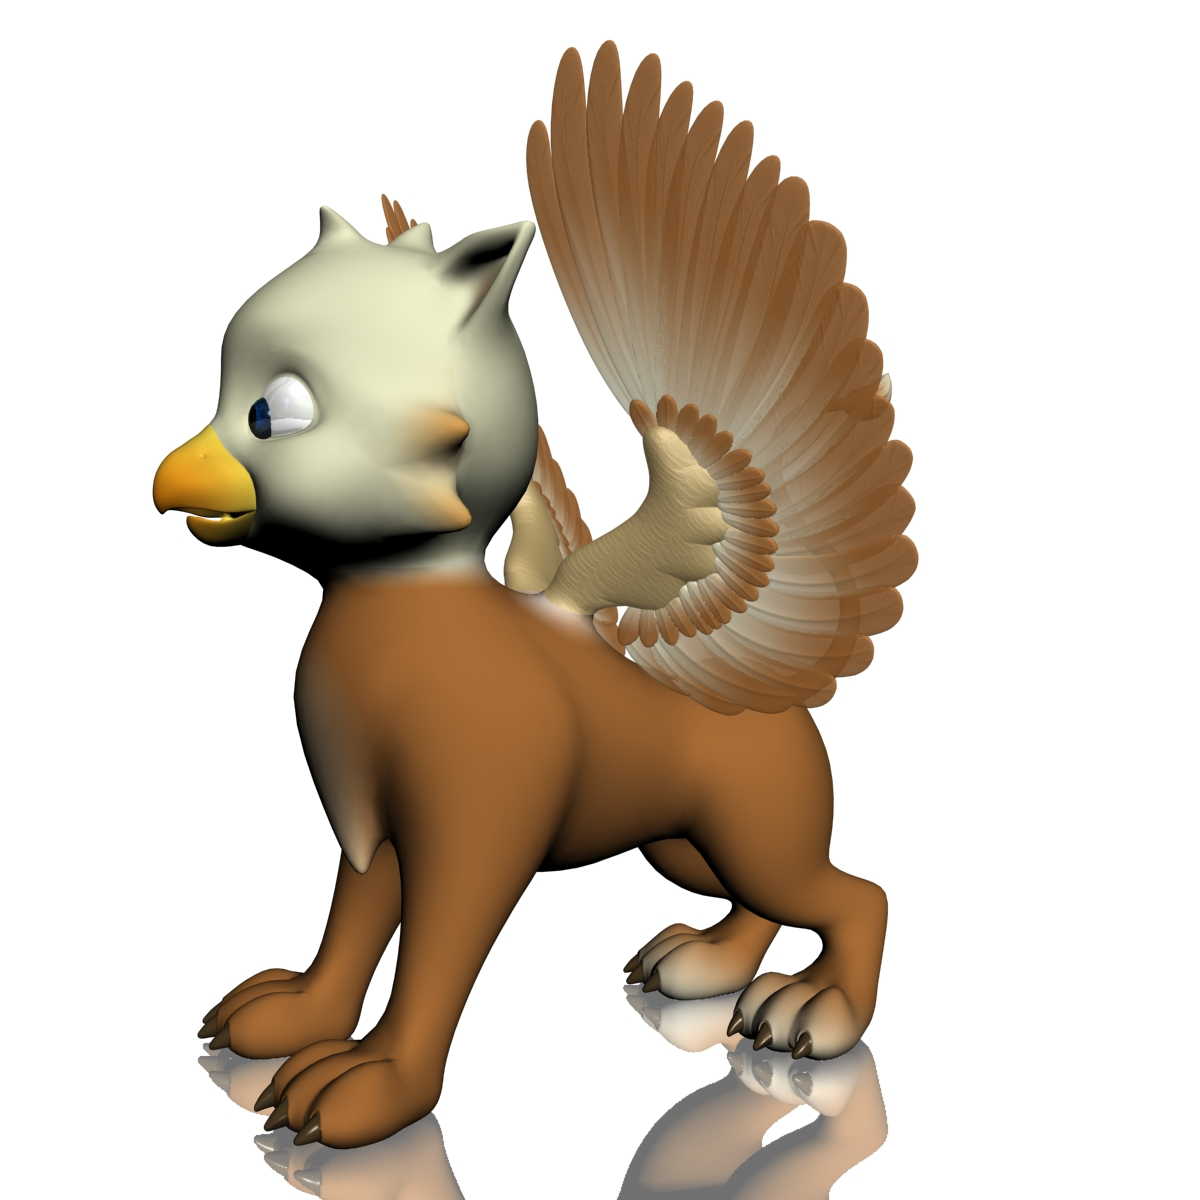 baby griffin rigged 3d model 3ds max fbx  obj 213419